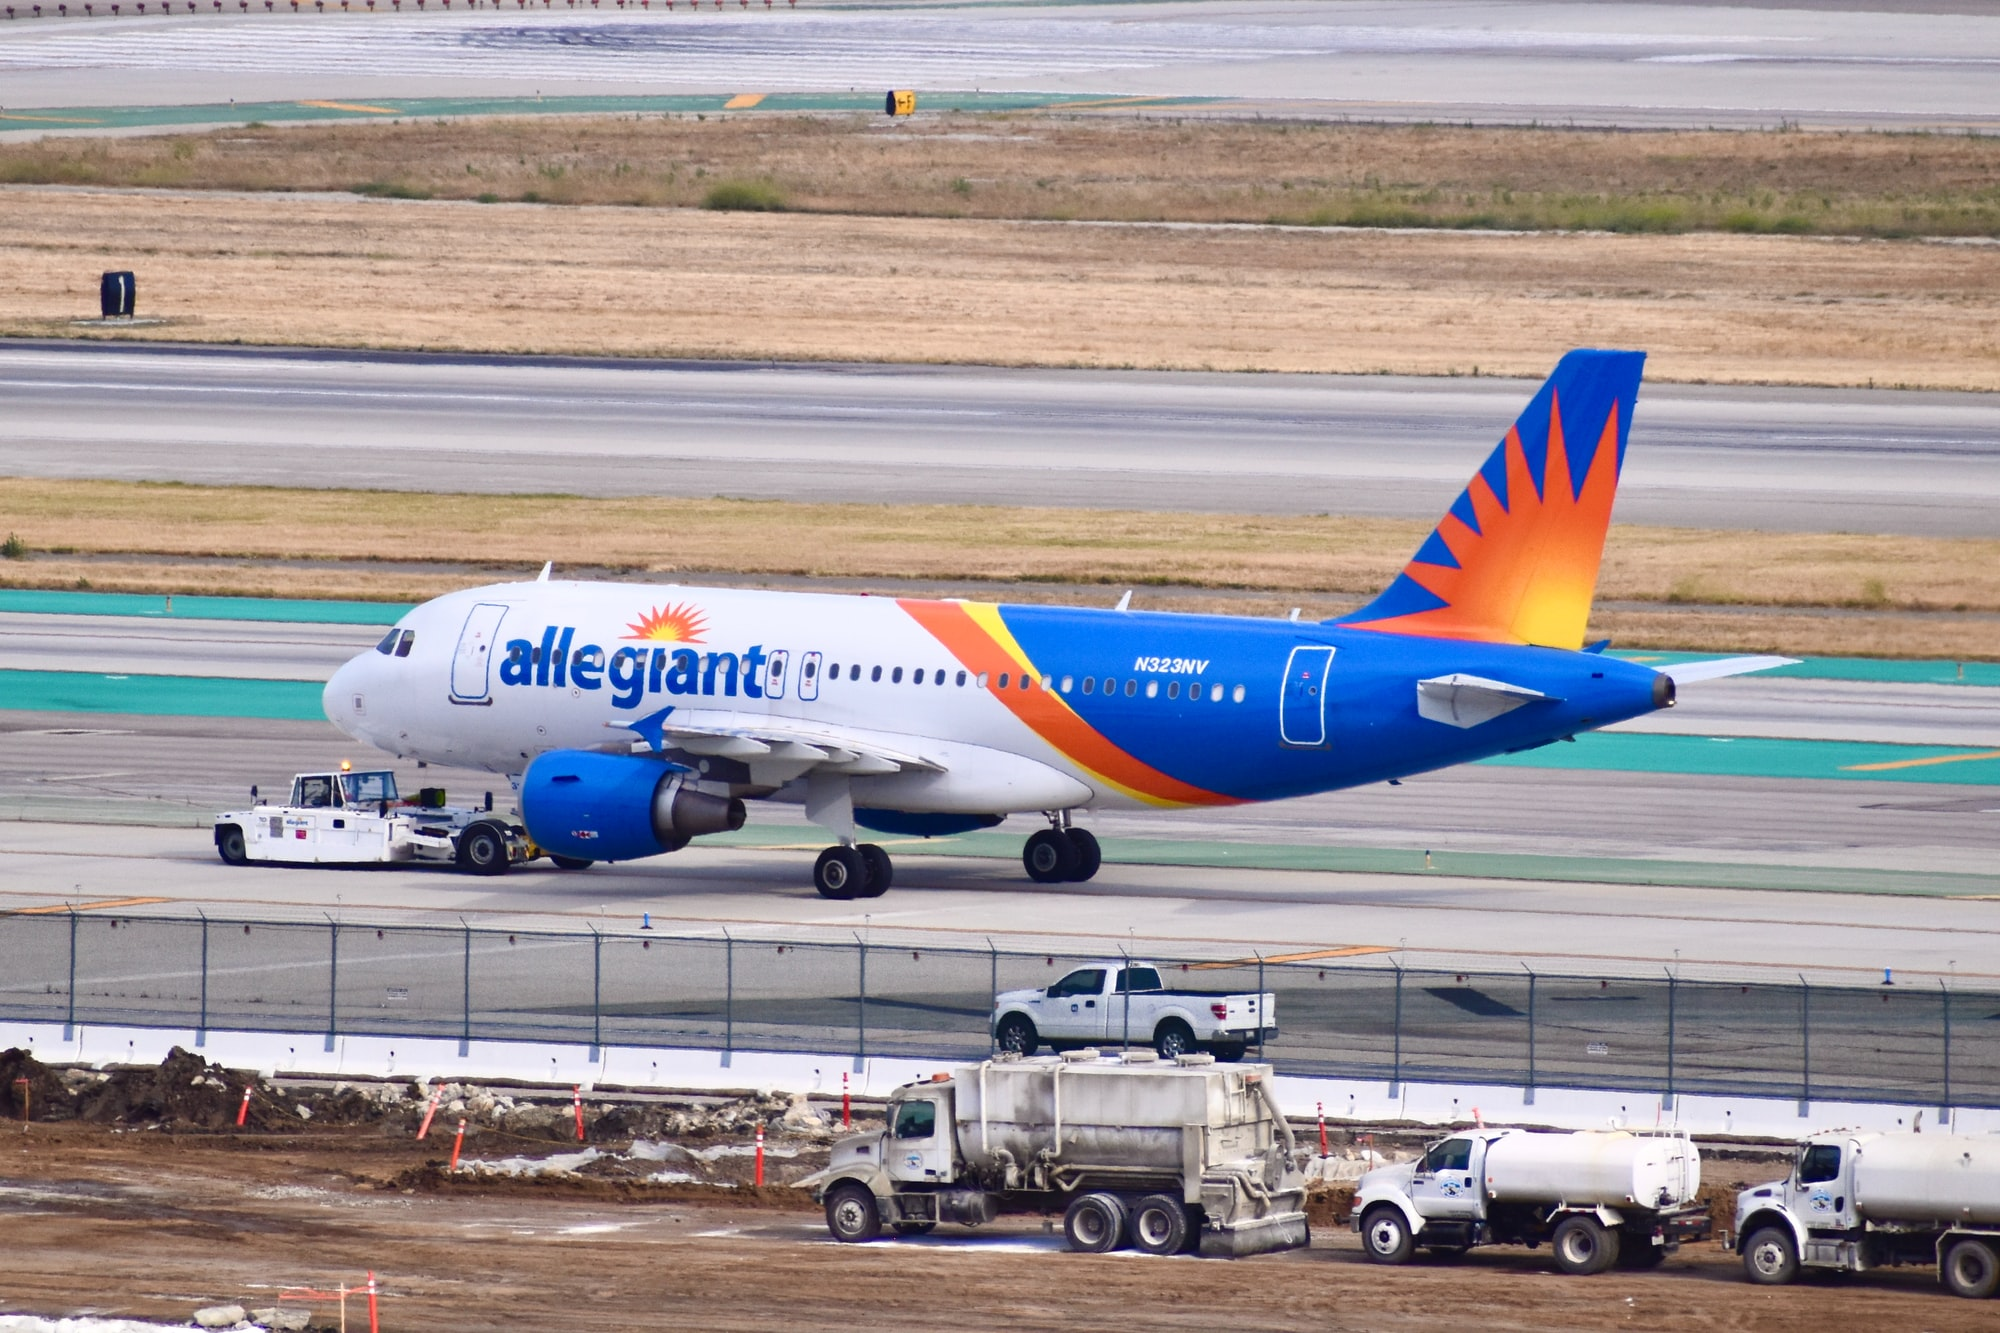 Allegiant Air Becomes Dulles International Airport's Newest Airline